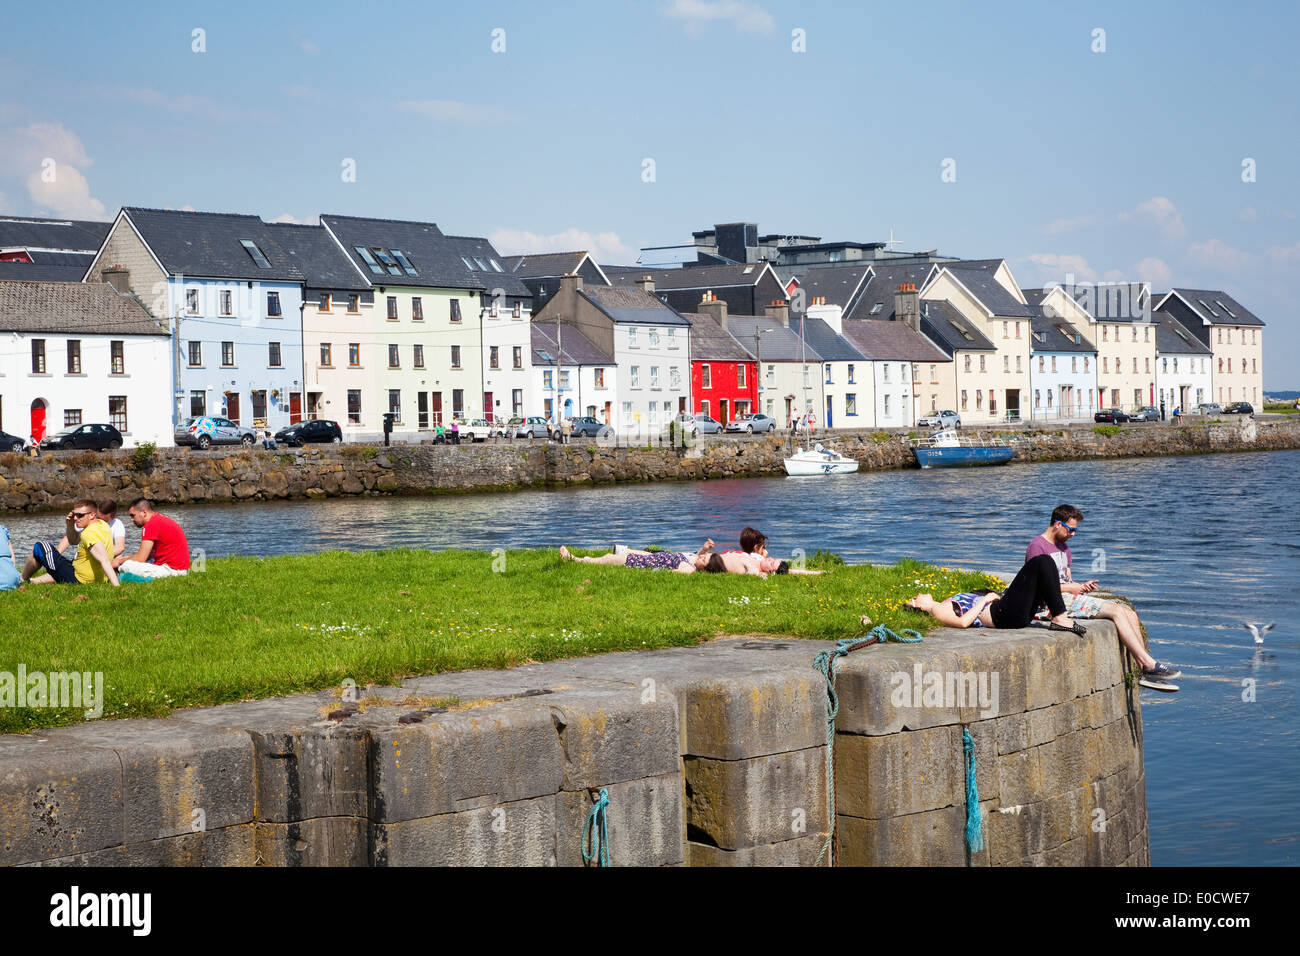 People sitting along the River Corrib in the Cladagh Area; Galway City, County Galway, Ireland - Stock Image